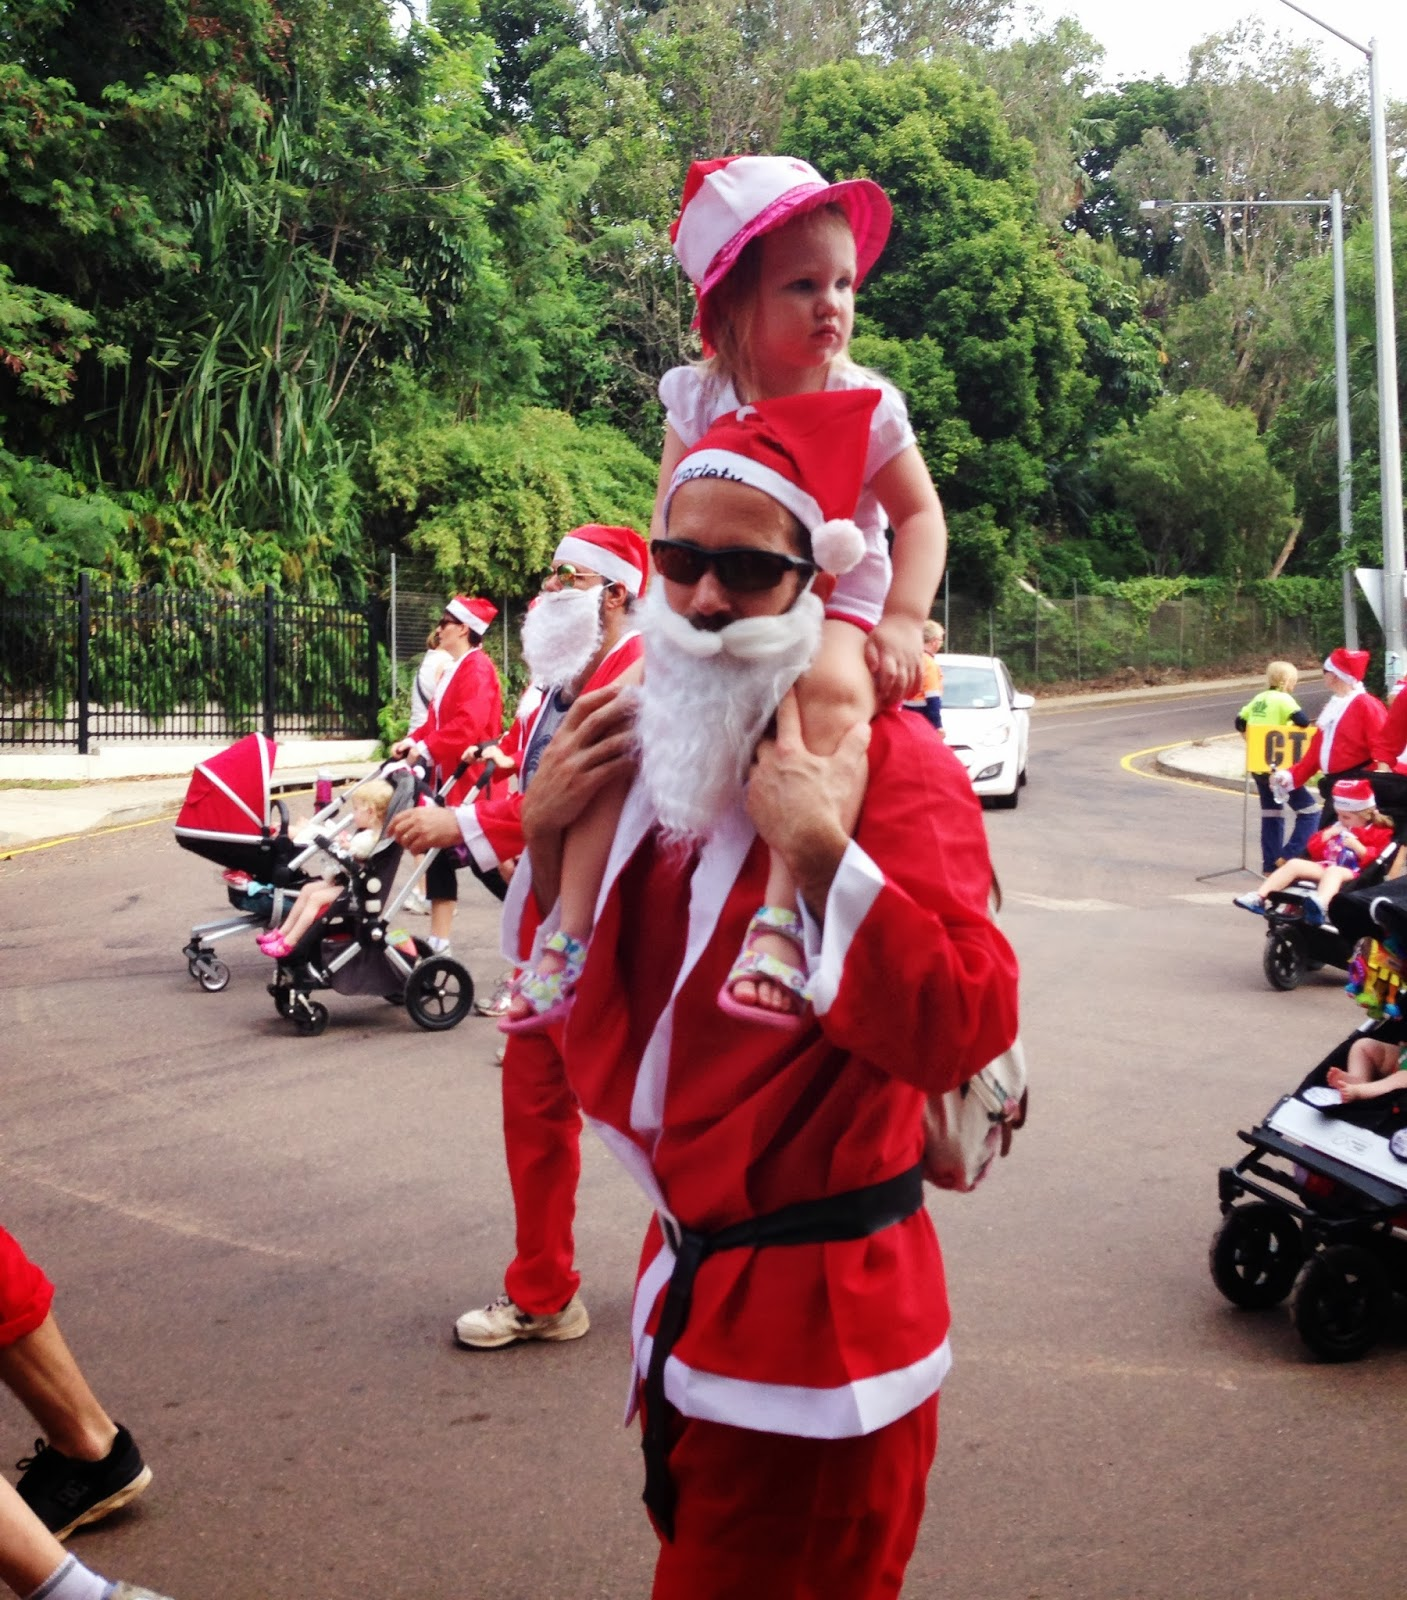 Fun Run, Family, exercising, running, toddler, charity, fundraising, community, Darwin, Variety